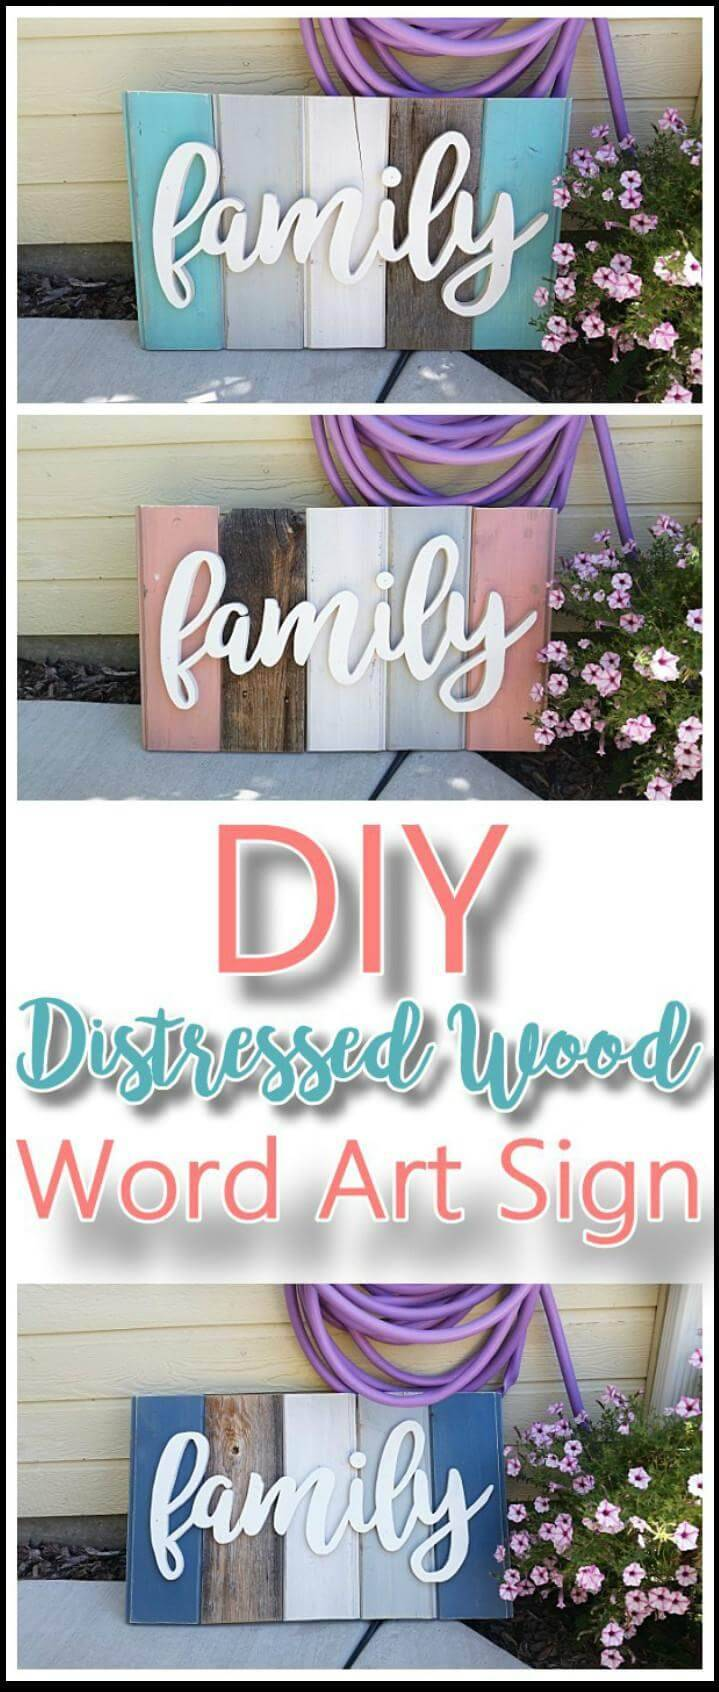 DIY distressed wood word art mother's day gift